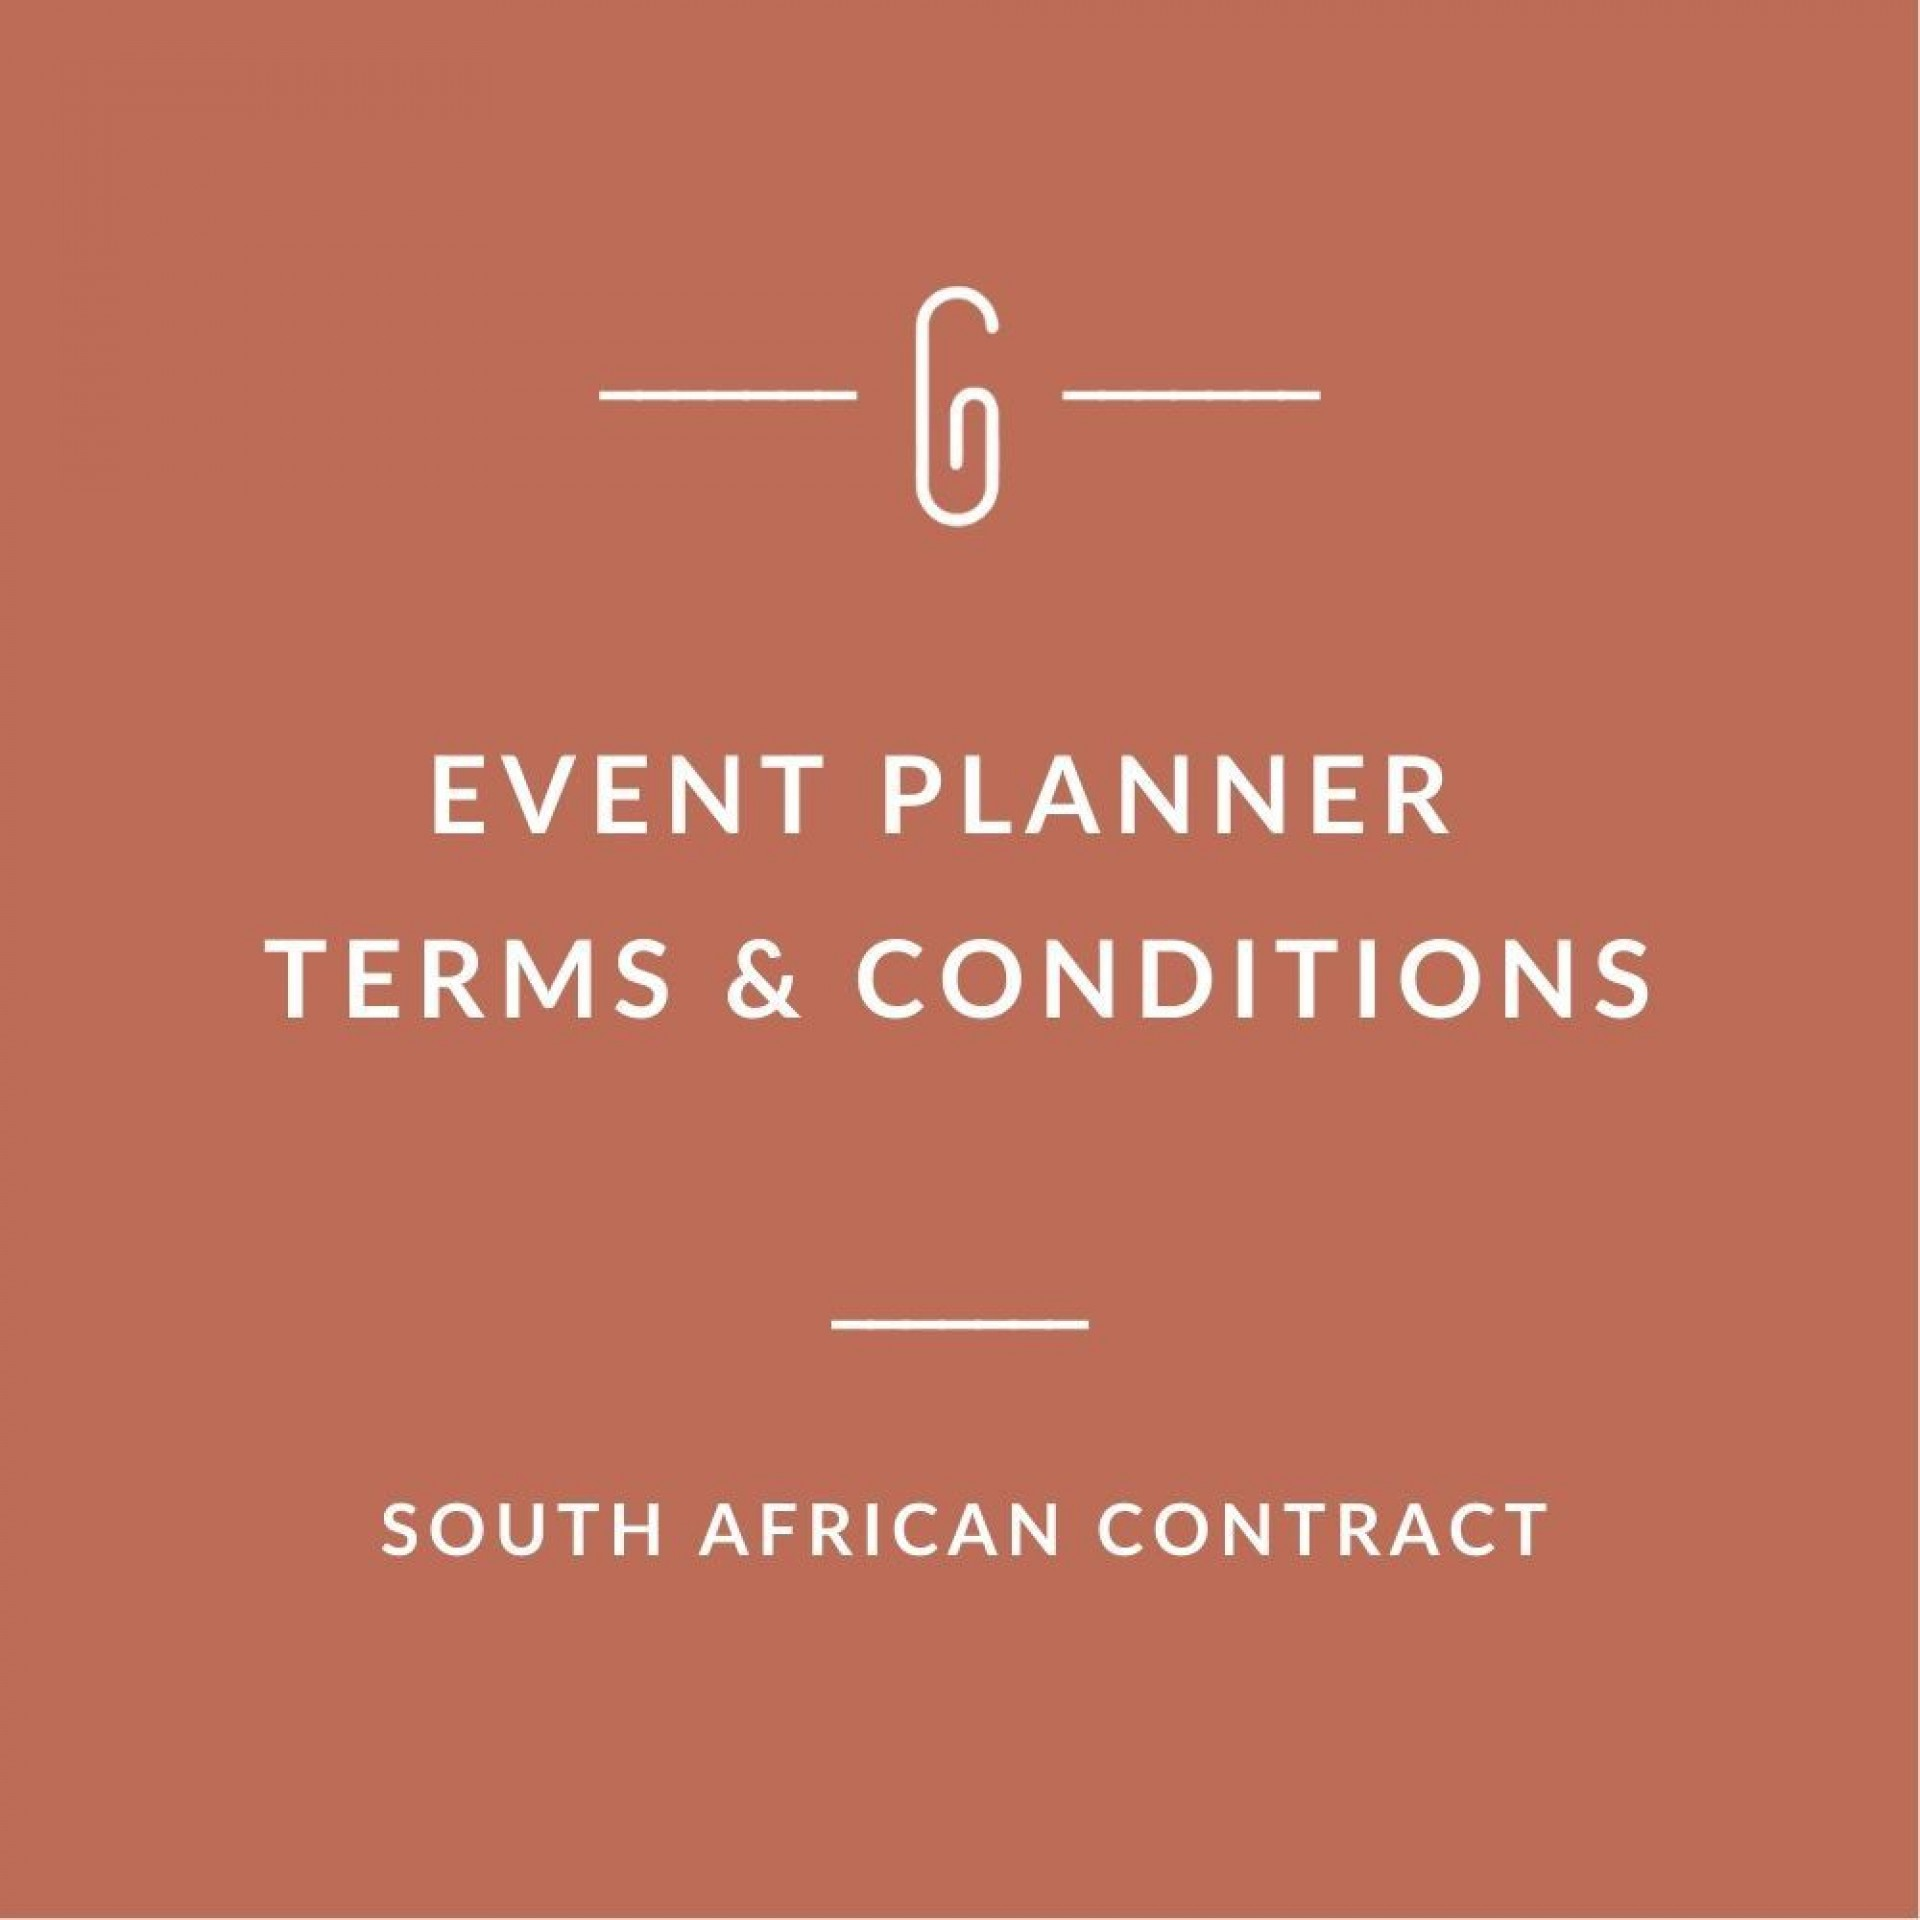 003 Formidable Event Planner Contract Template Picture  Free Download Planning1920